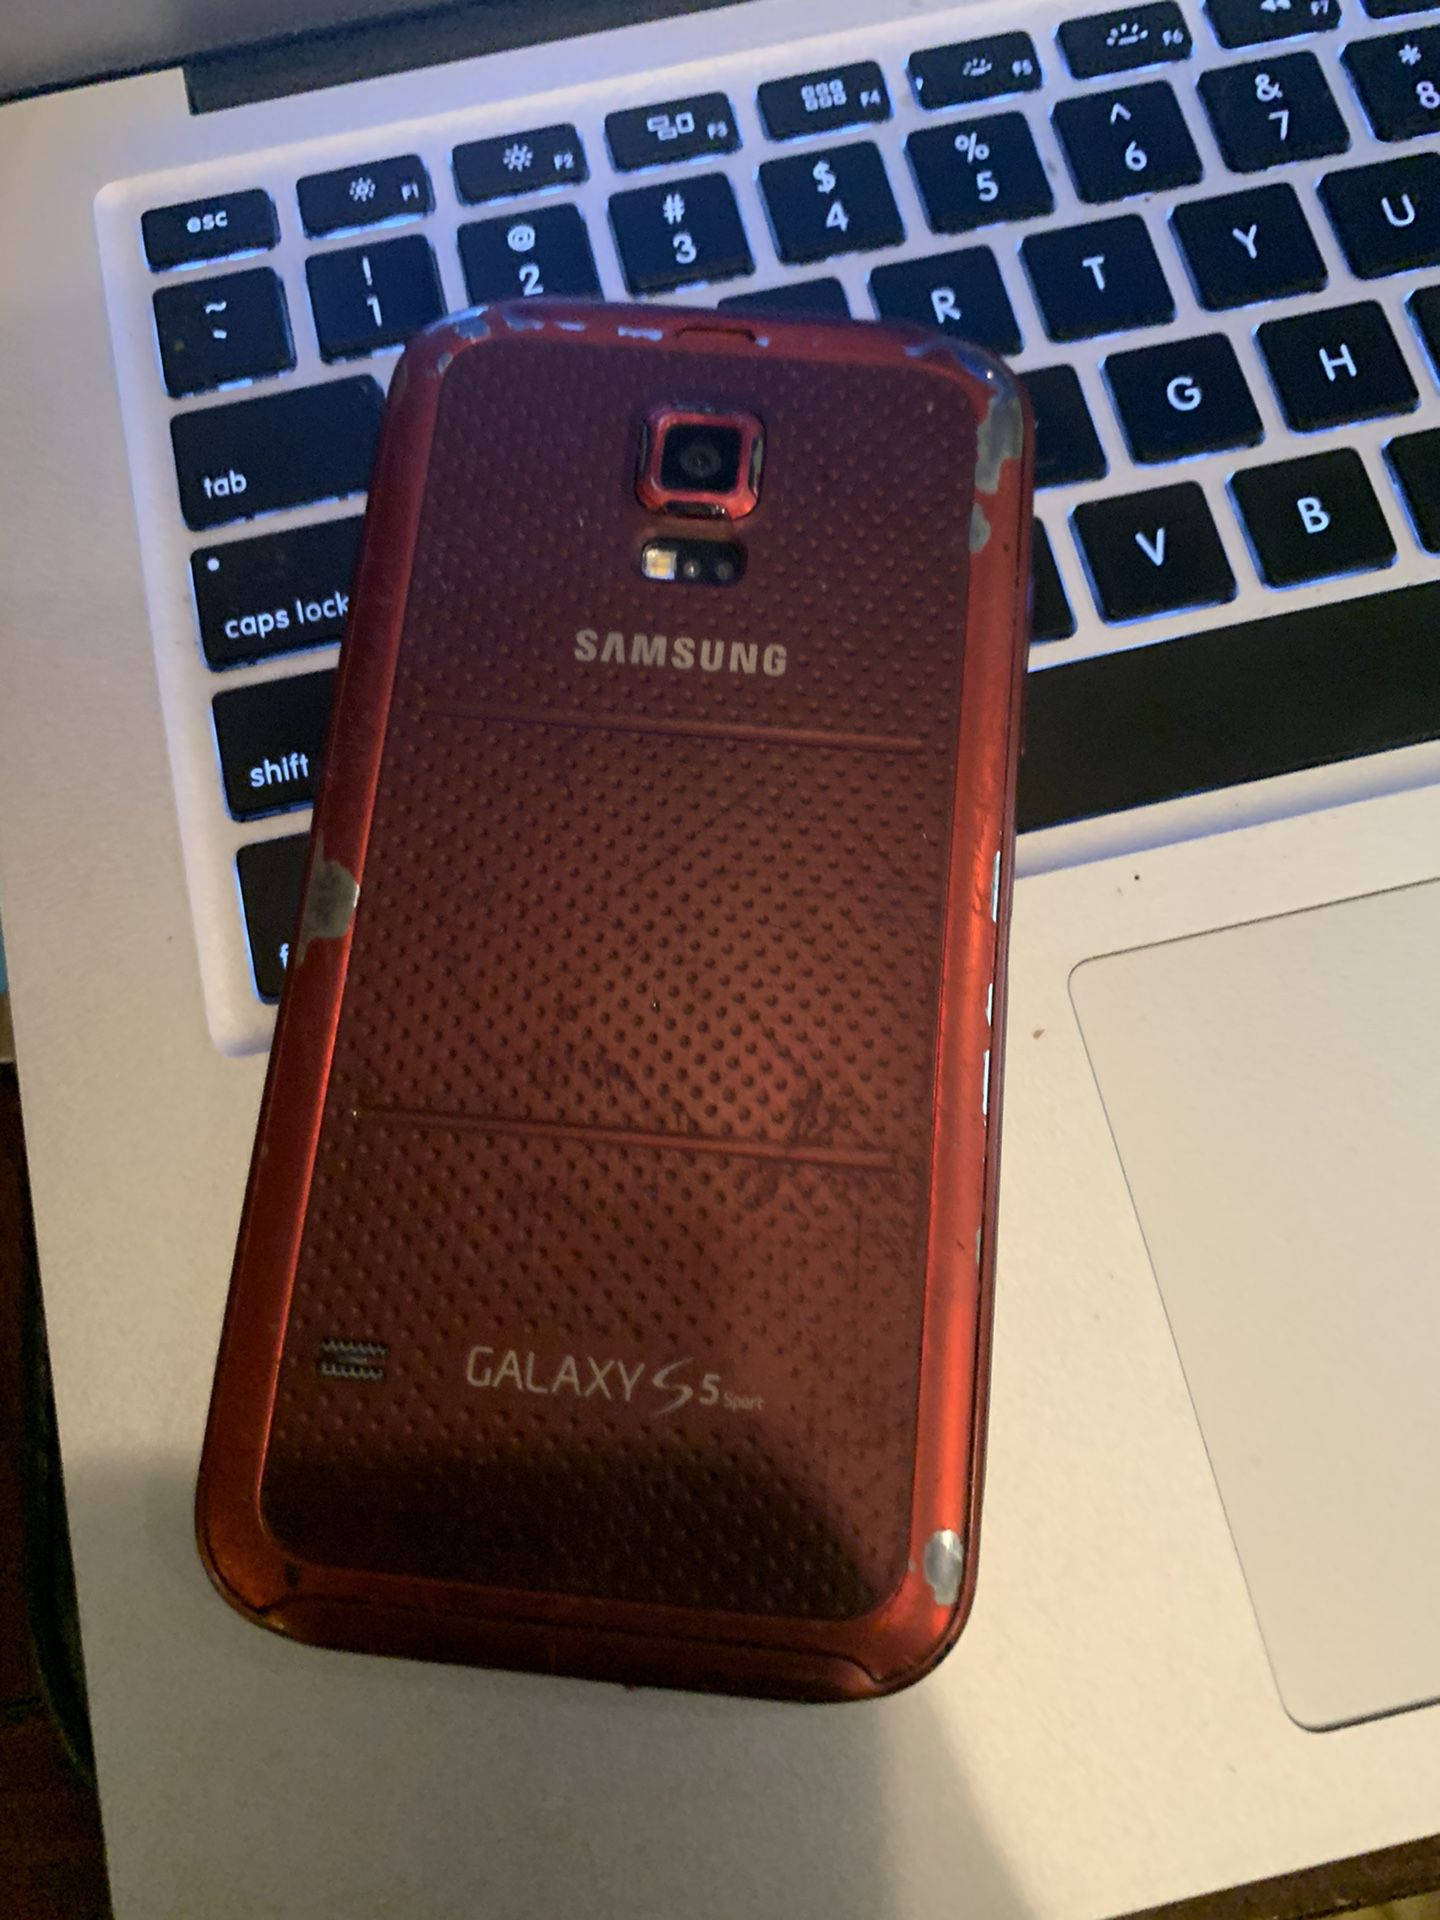 Galaxy s5 sport sprint or boost mobile cracked screen but everything works perfect